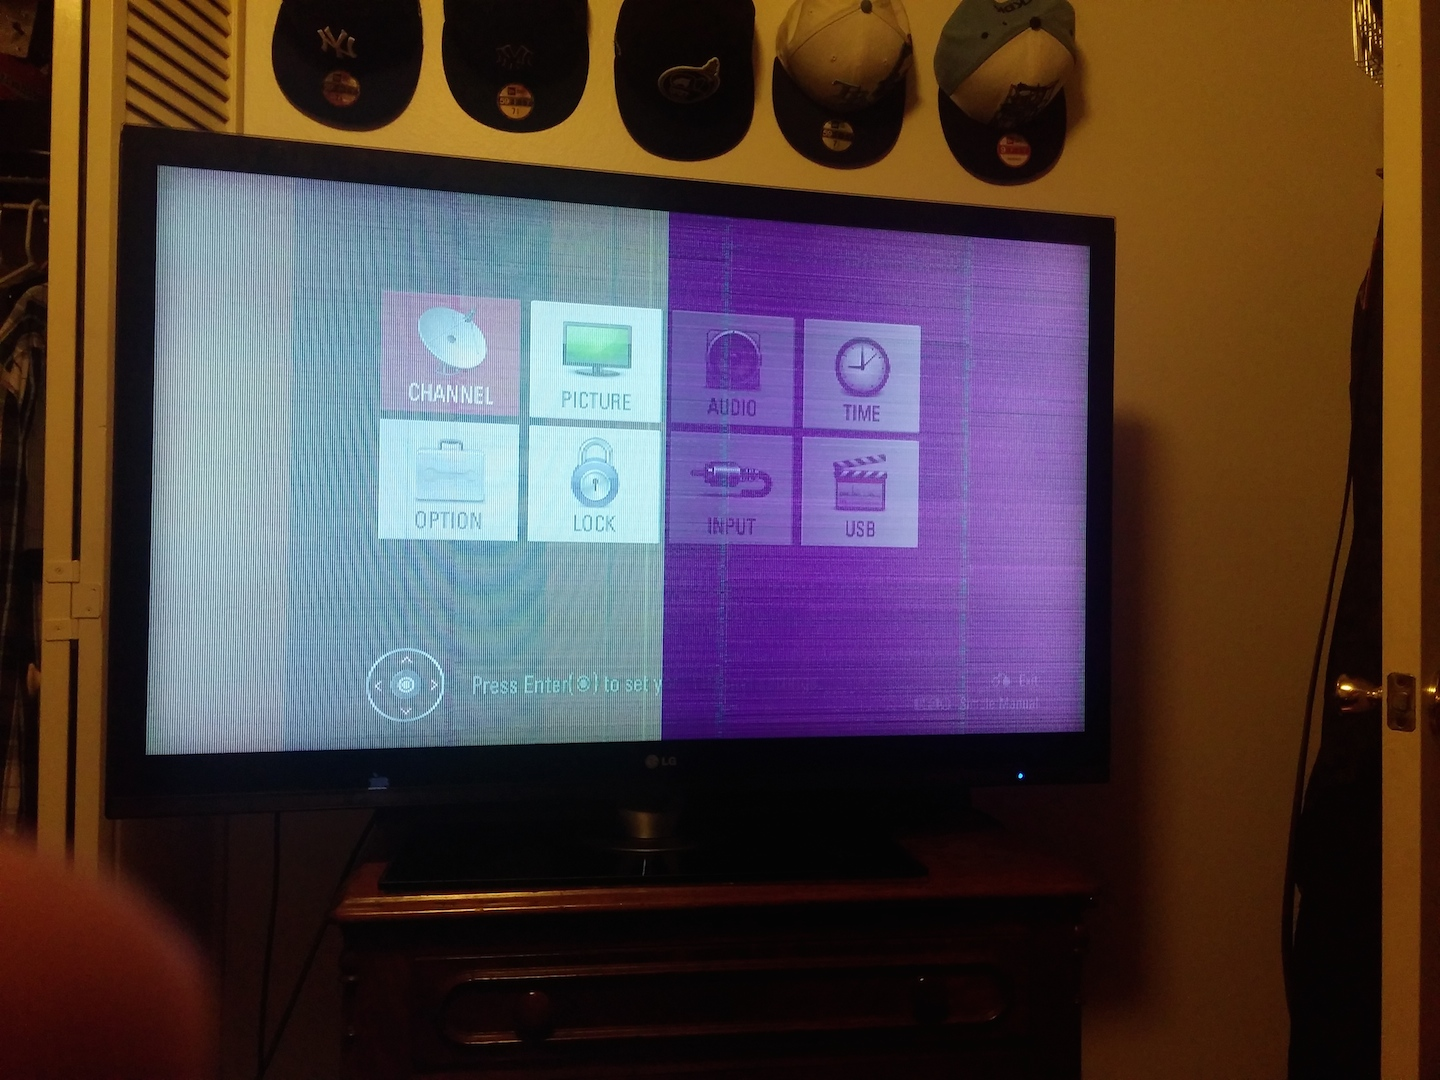 I have a 2009 lg 47sl85-ua flat screen  when i power on the tv i